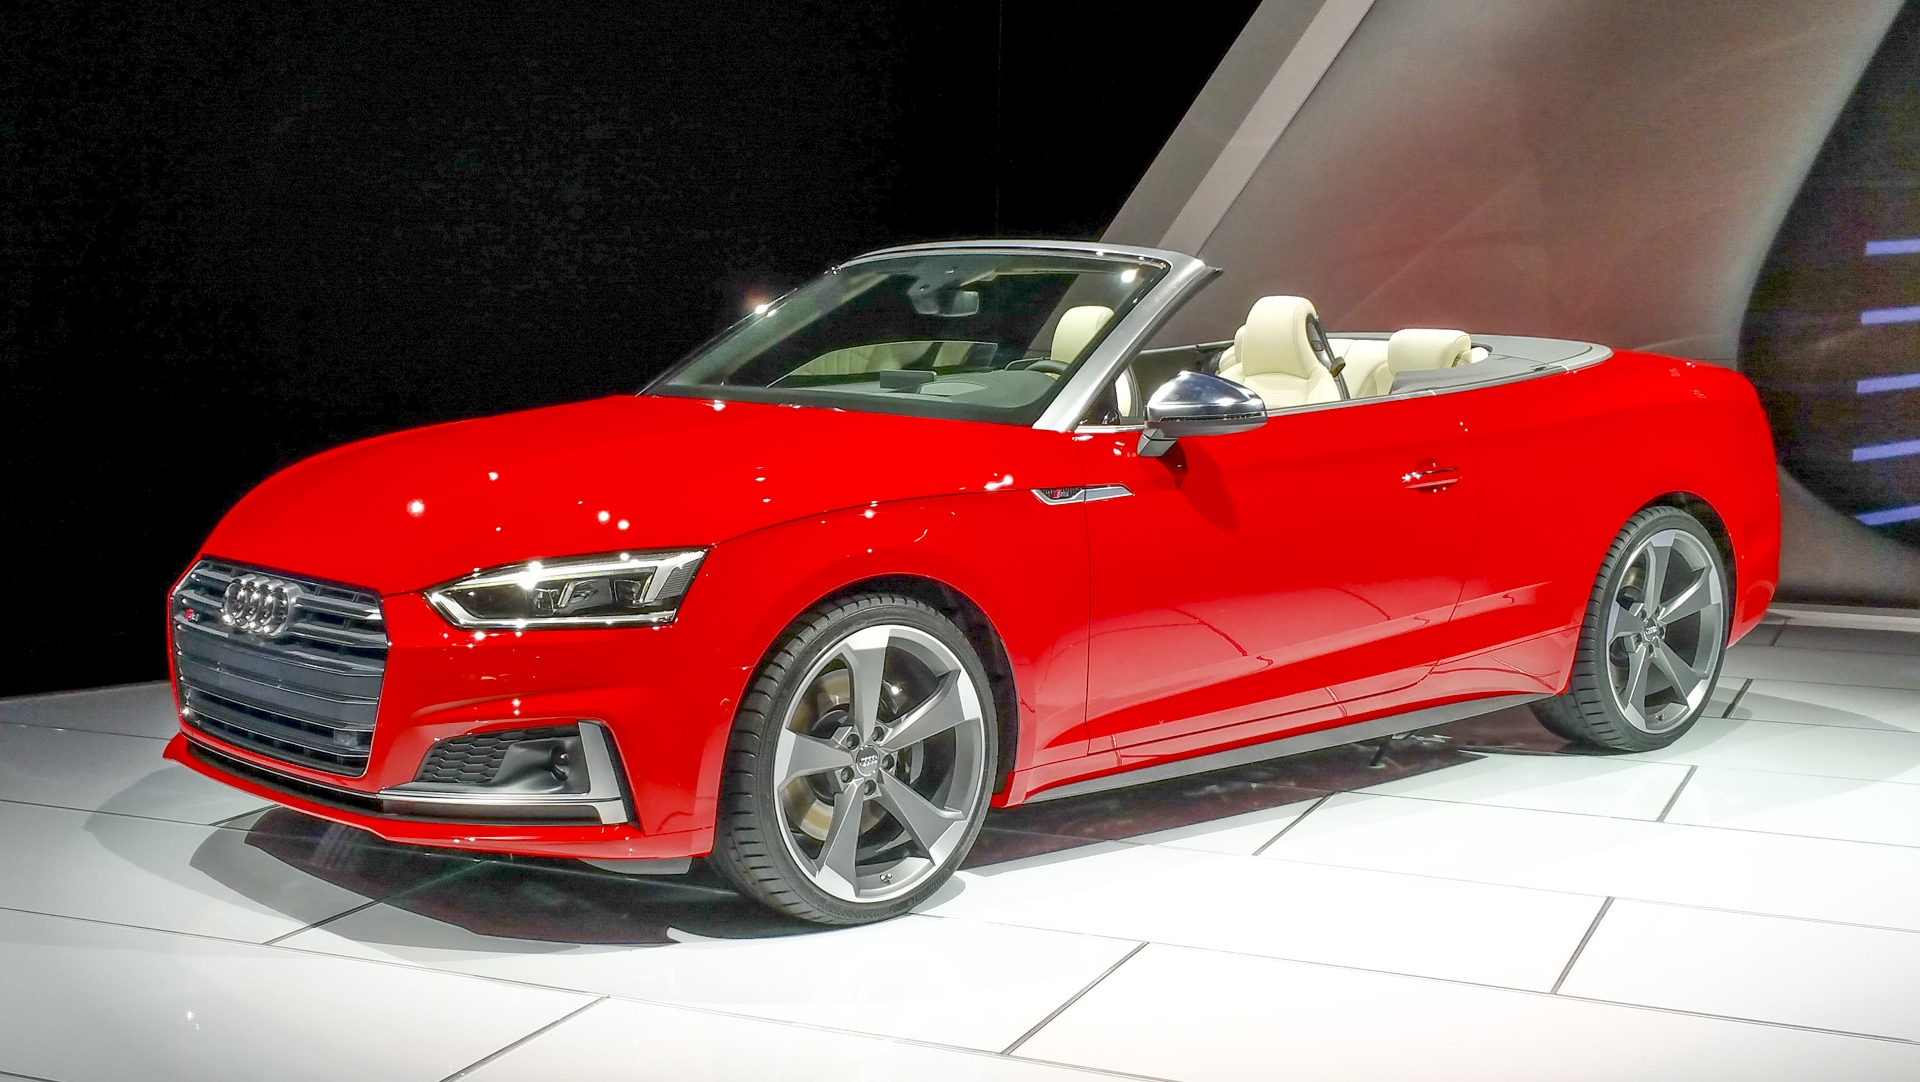 convertible audi to sale become unlikely for render wcf news reality cabriolet